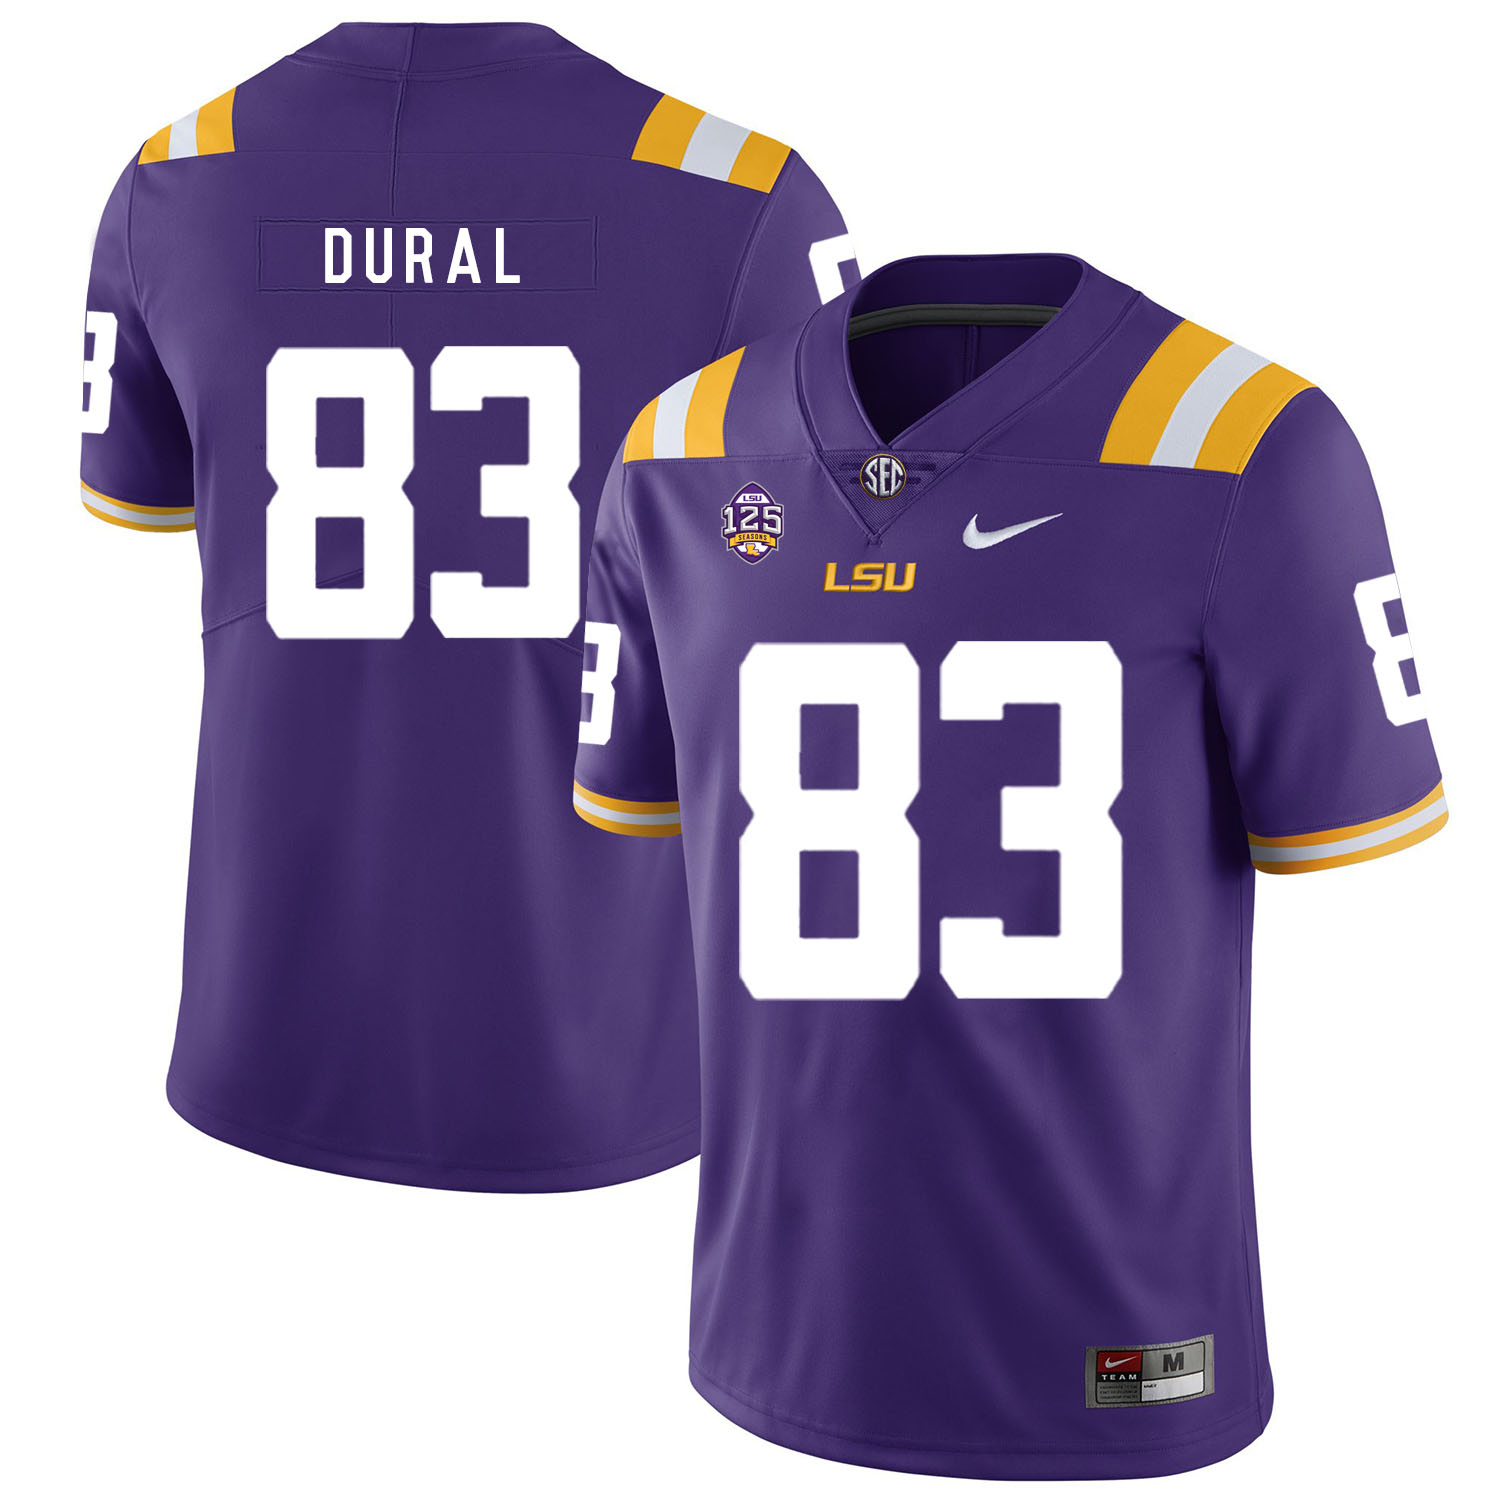 LSU Tigers 83 Travin Dural Purple Nike College Football Jersey